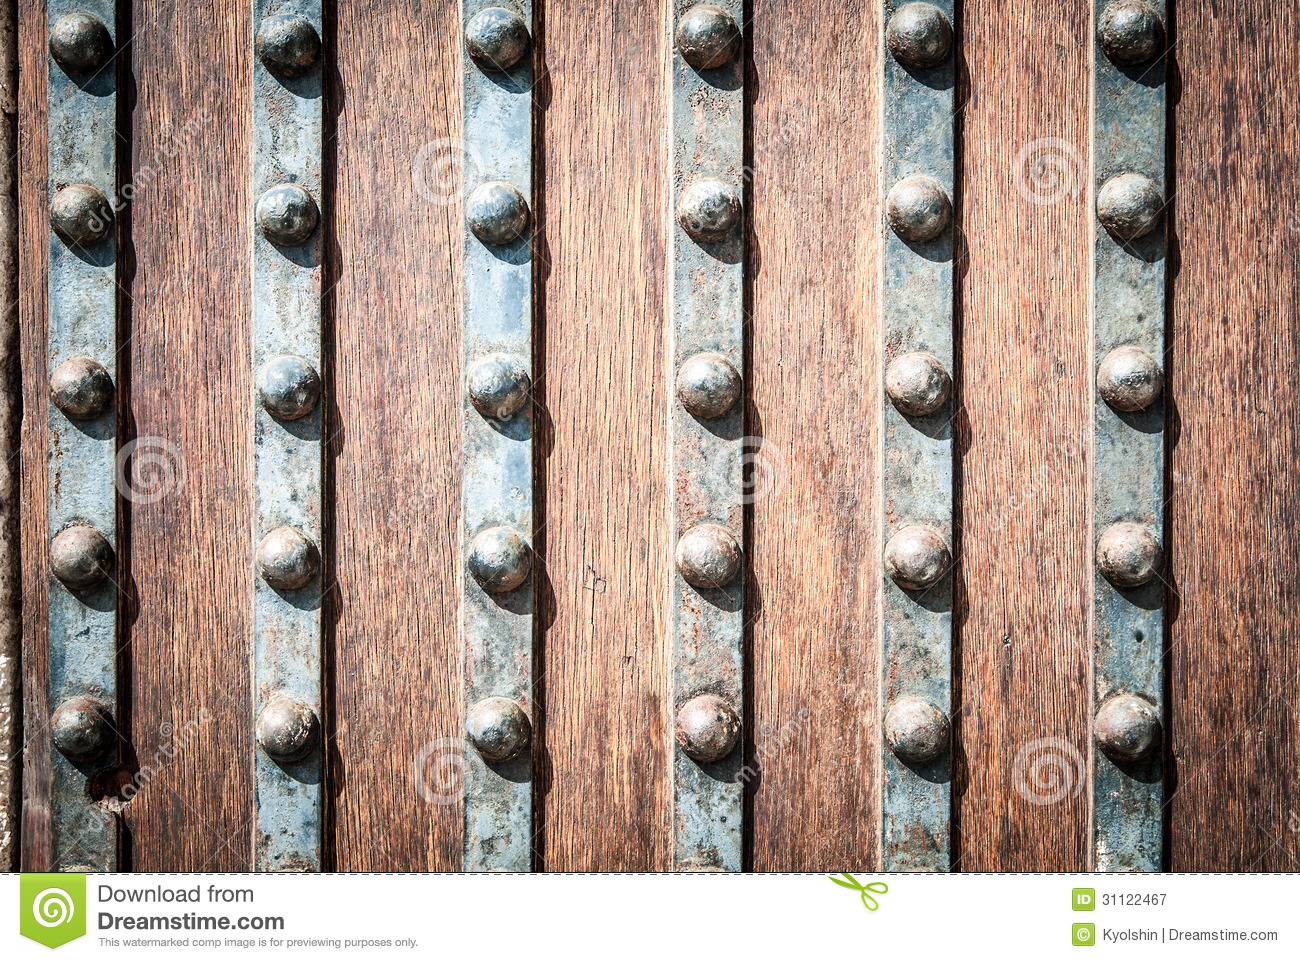 detail of wood and metal door with rivets stock image image of grungy pattern 31122467. Black Bedroom Furniture Sets. Home Design Ideas